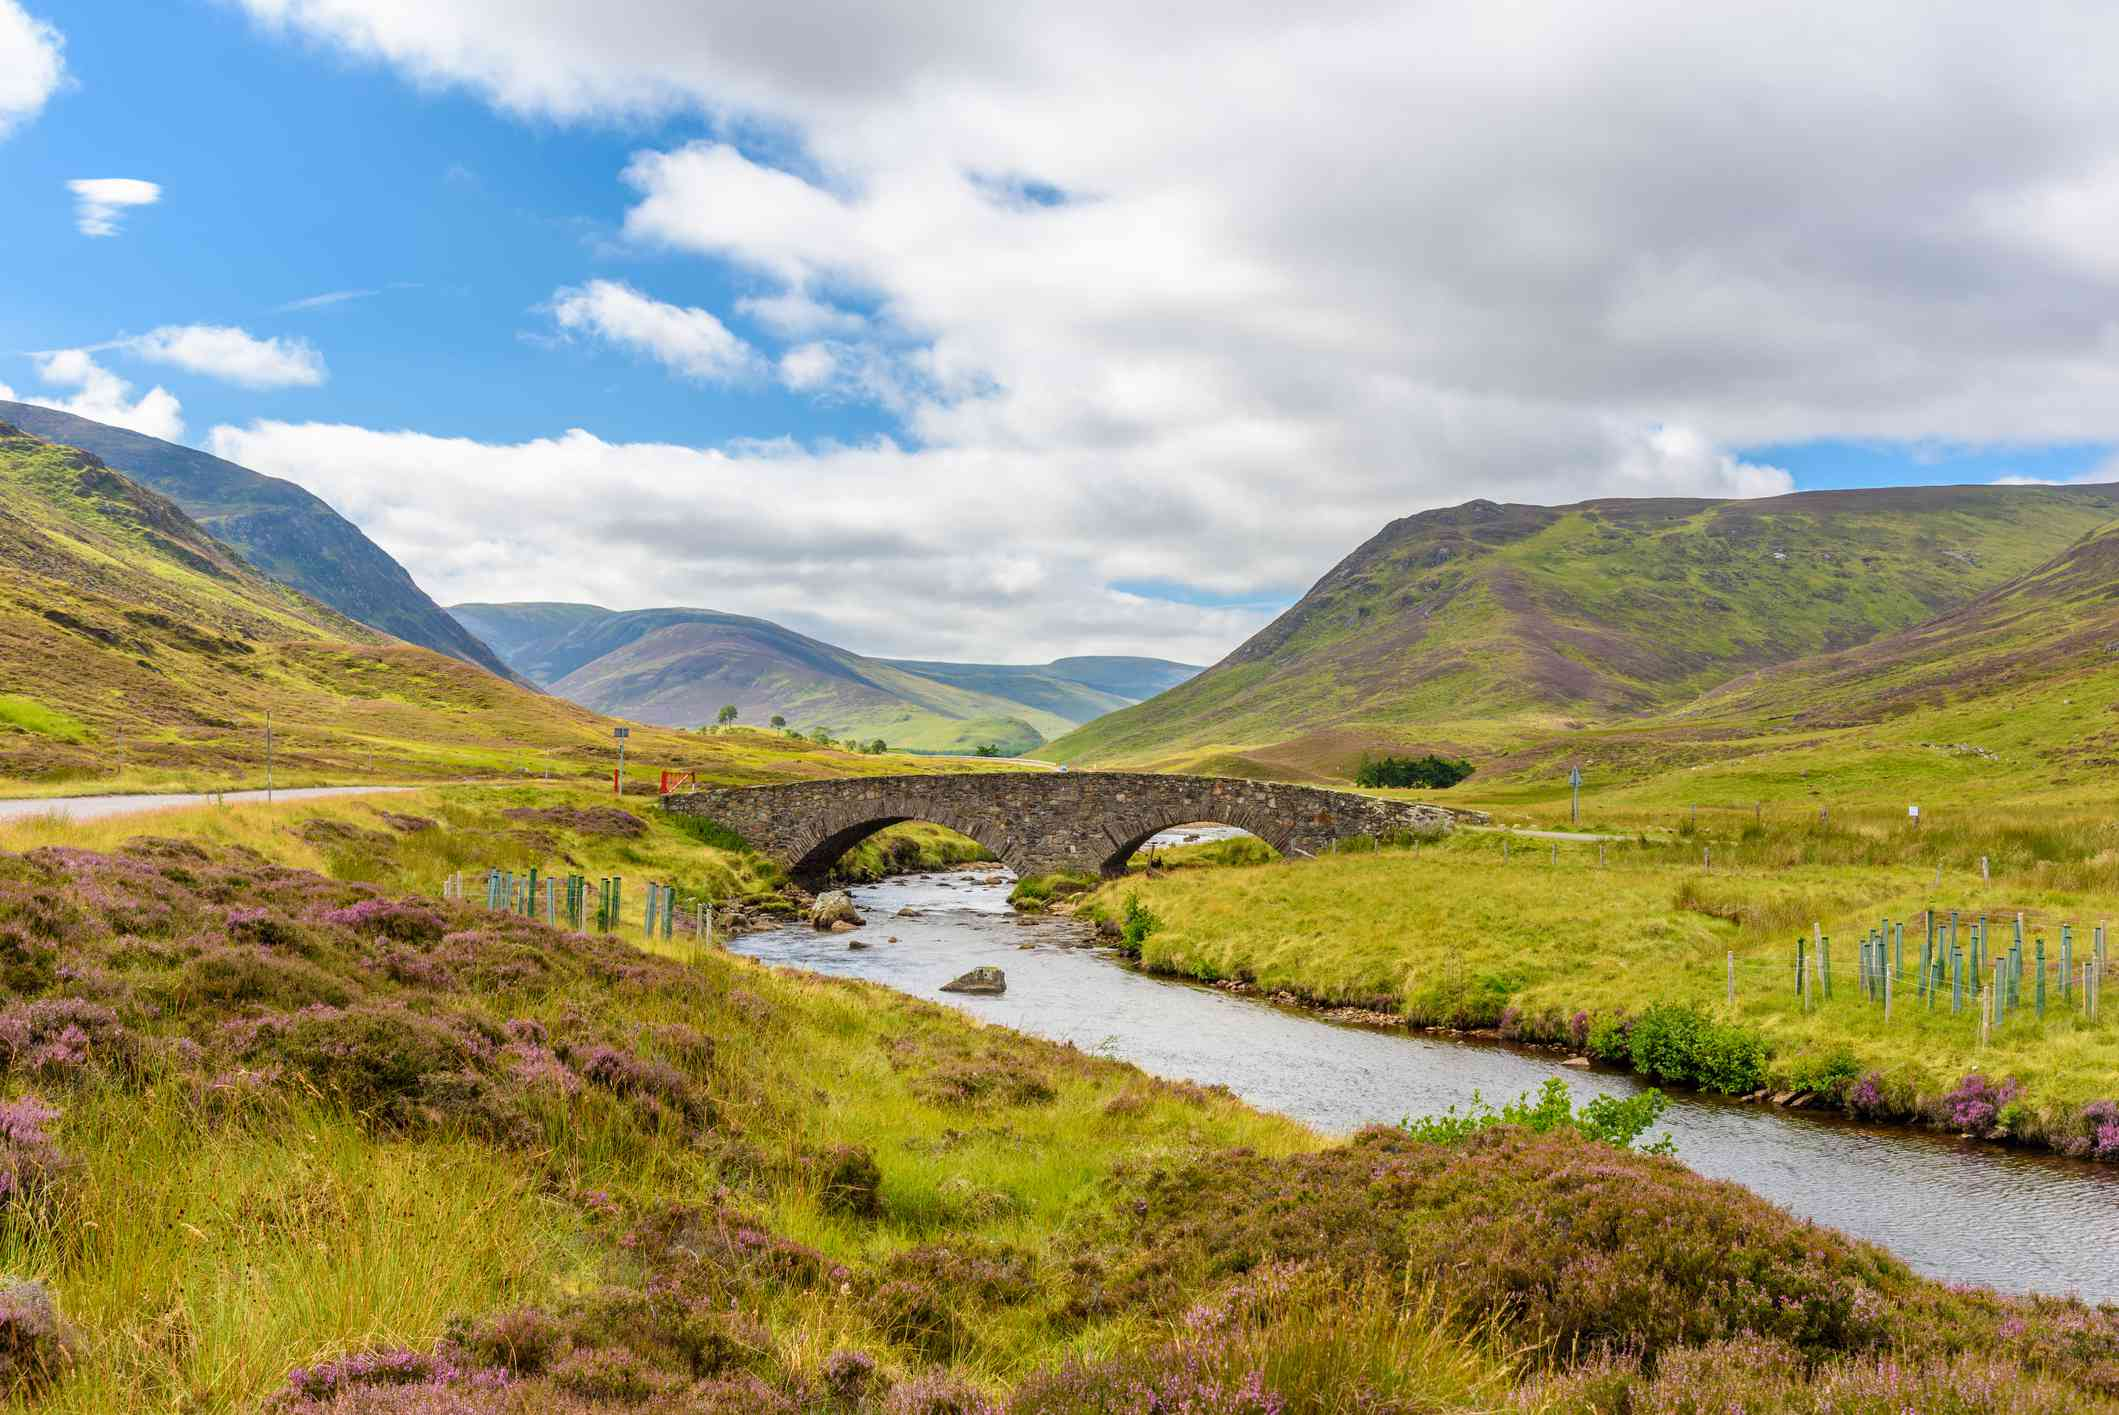 View of the bridge crossing a stream in Cairngorms National Park in Scotland in summer.